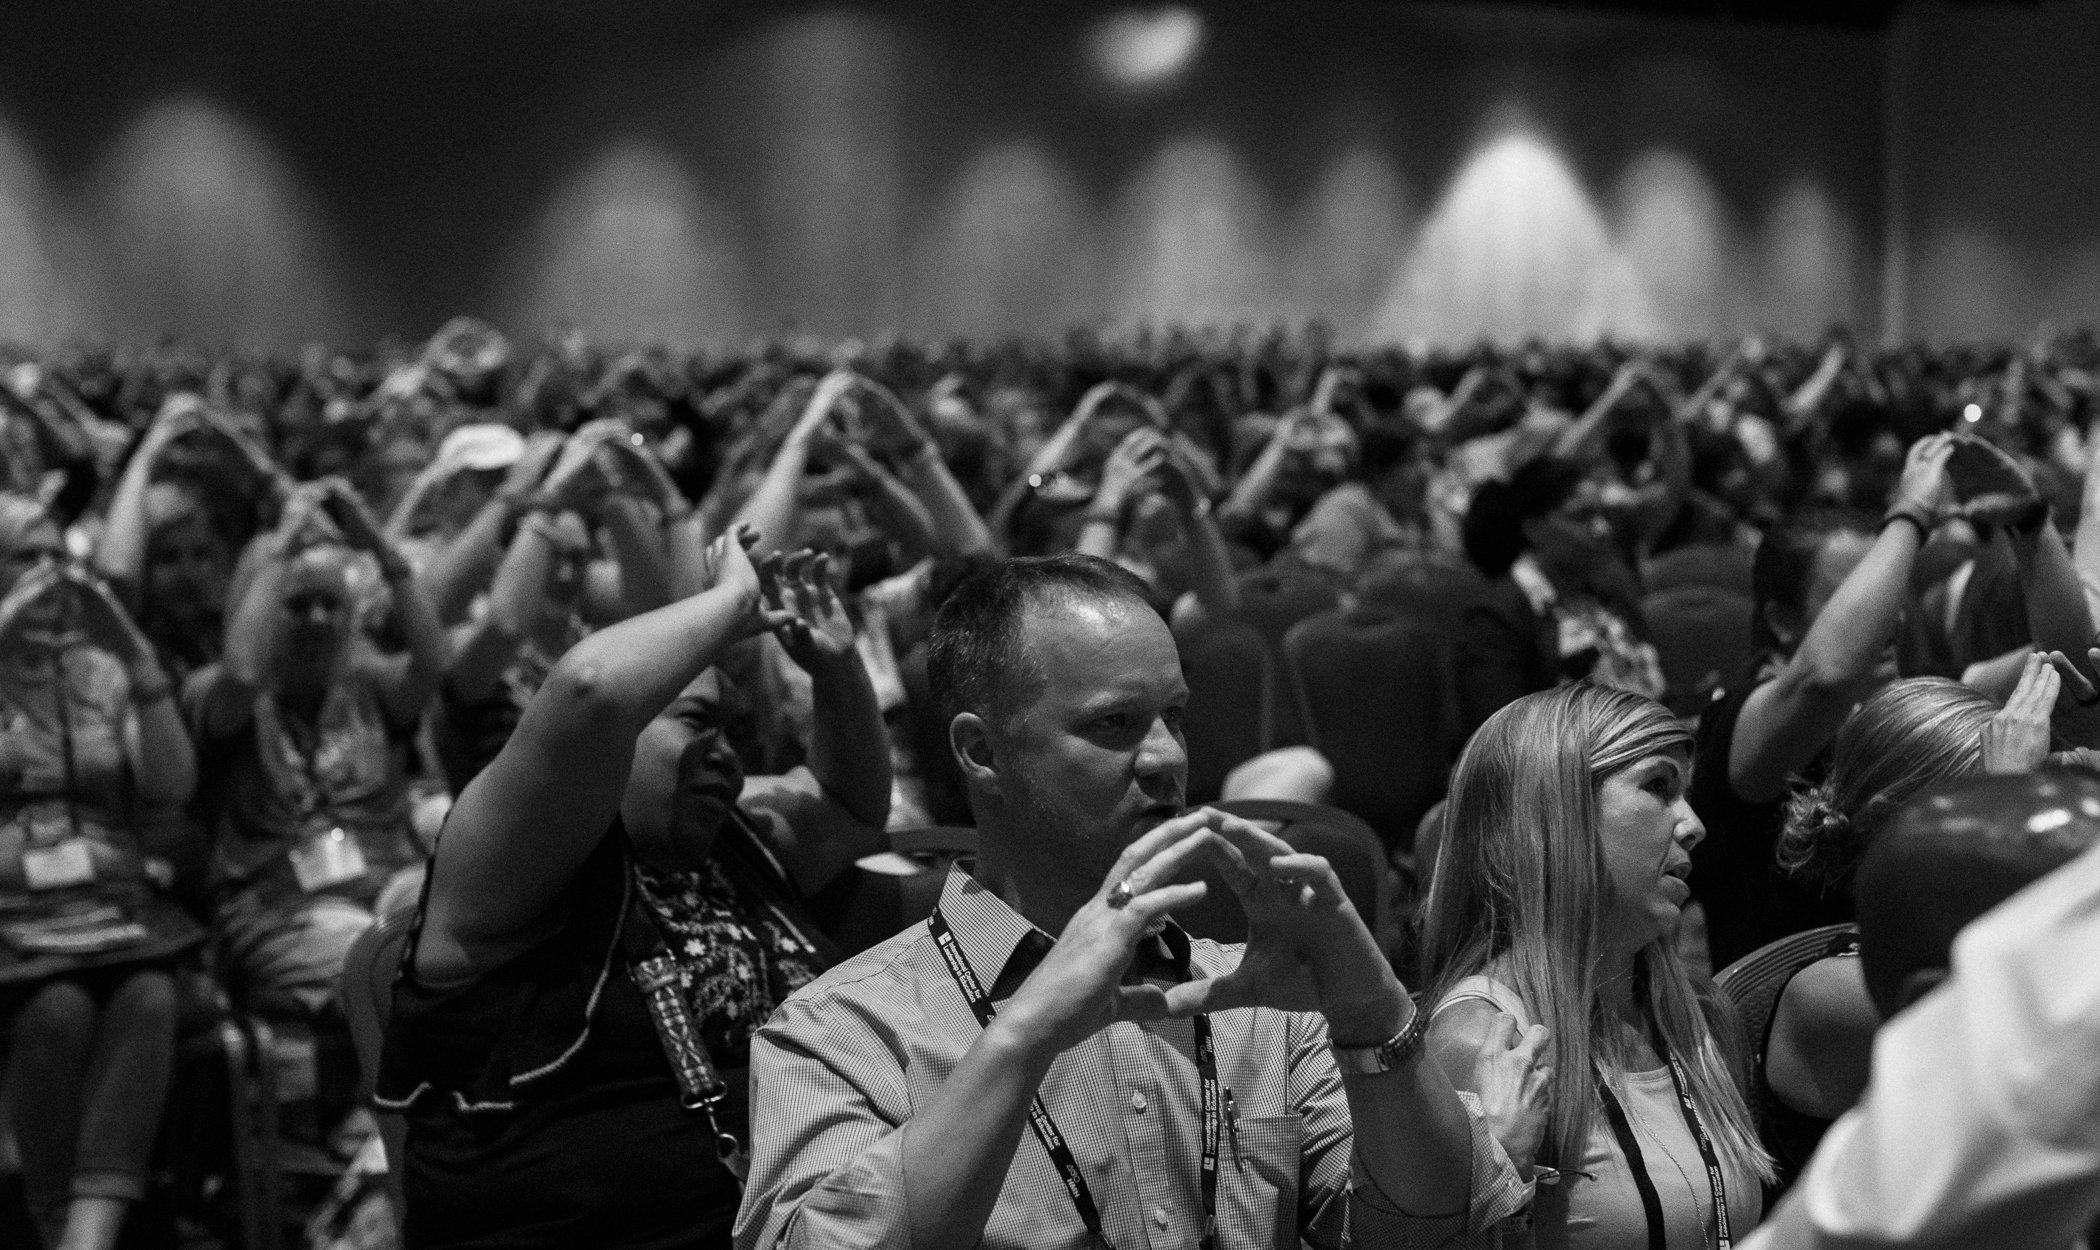 live event commercial photography brand storytelling for education florida conference photographer ©2018abigailbobophotography-30.jpg